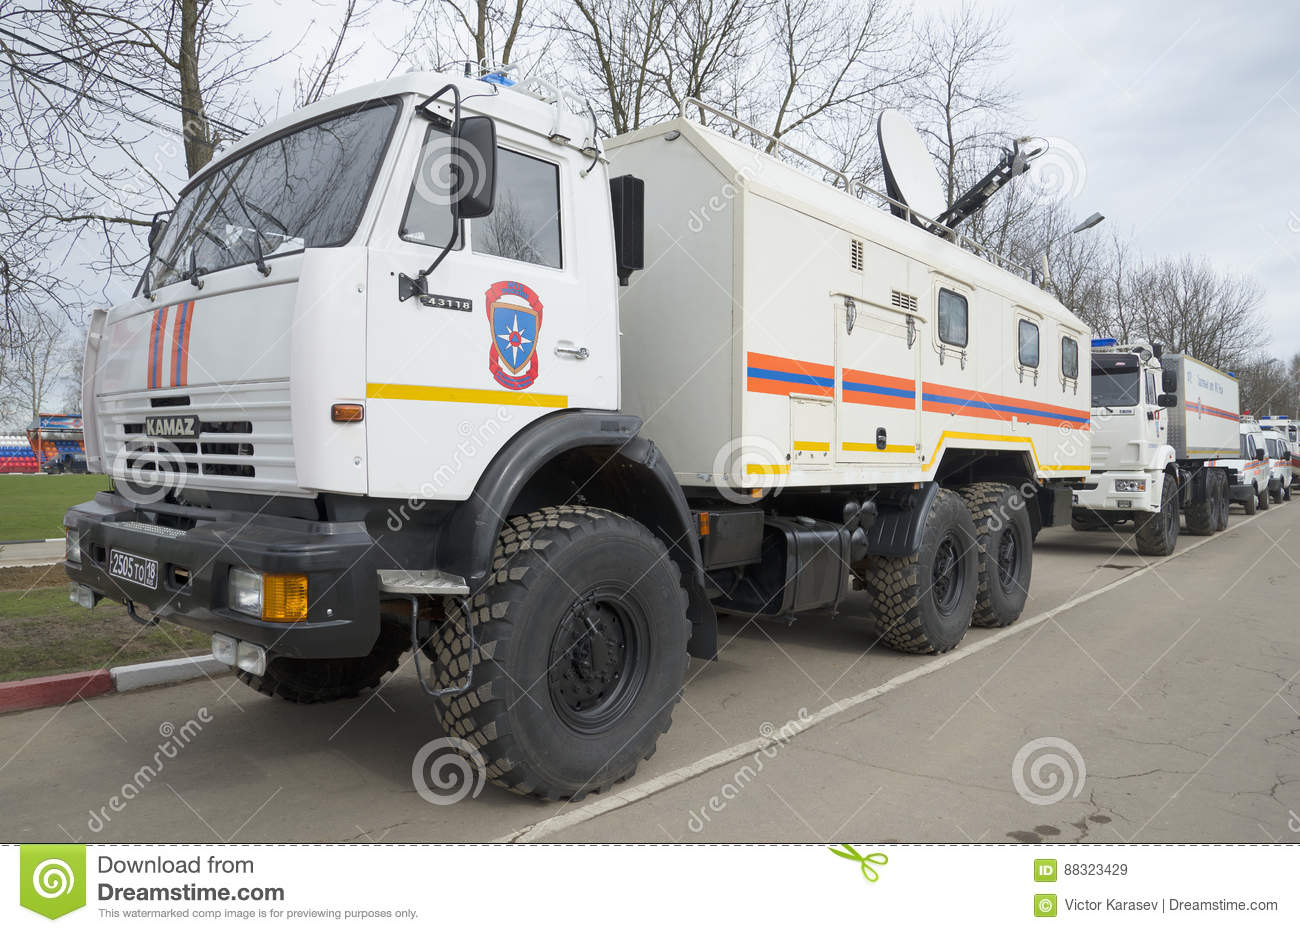 How to collect KAMAZ 34